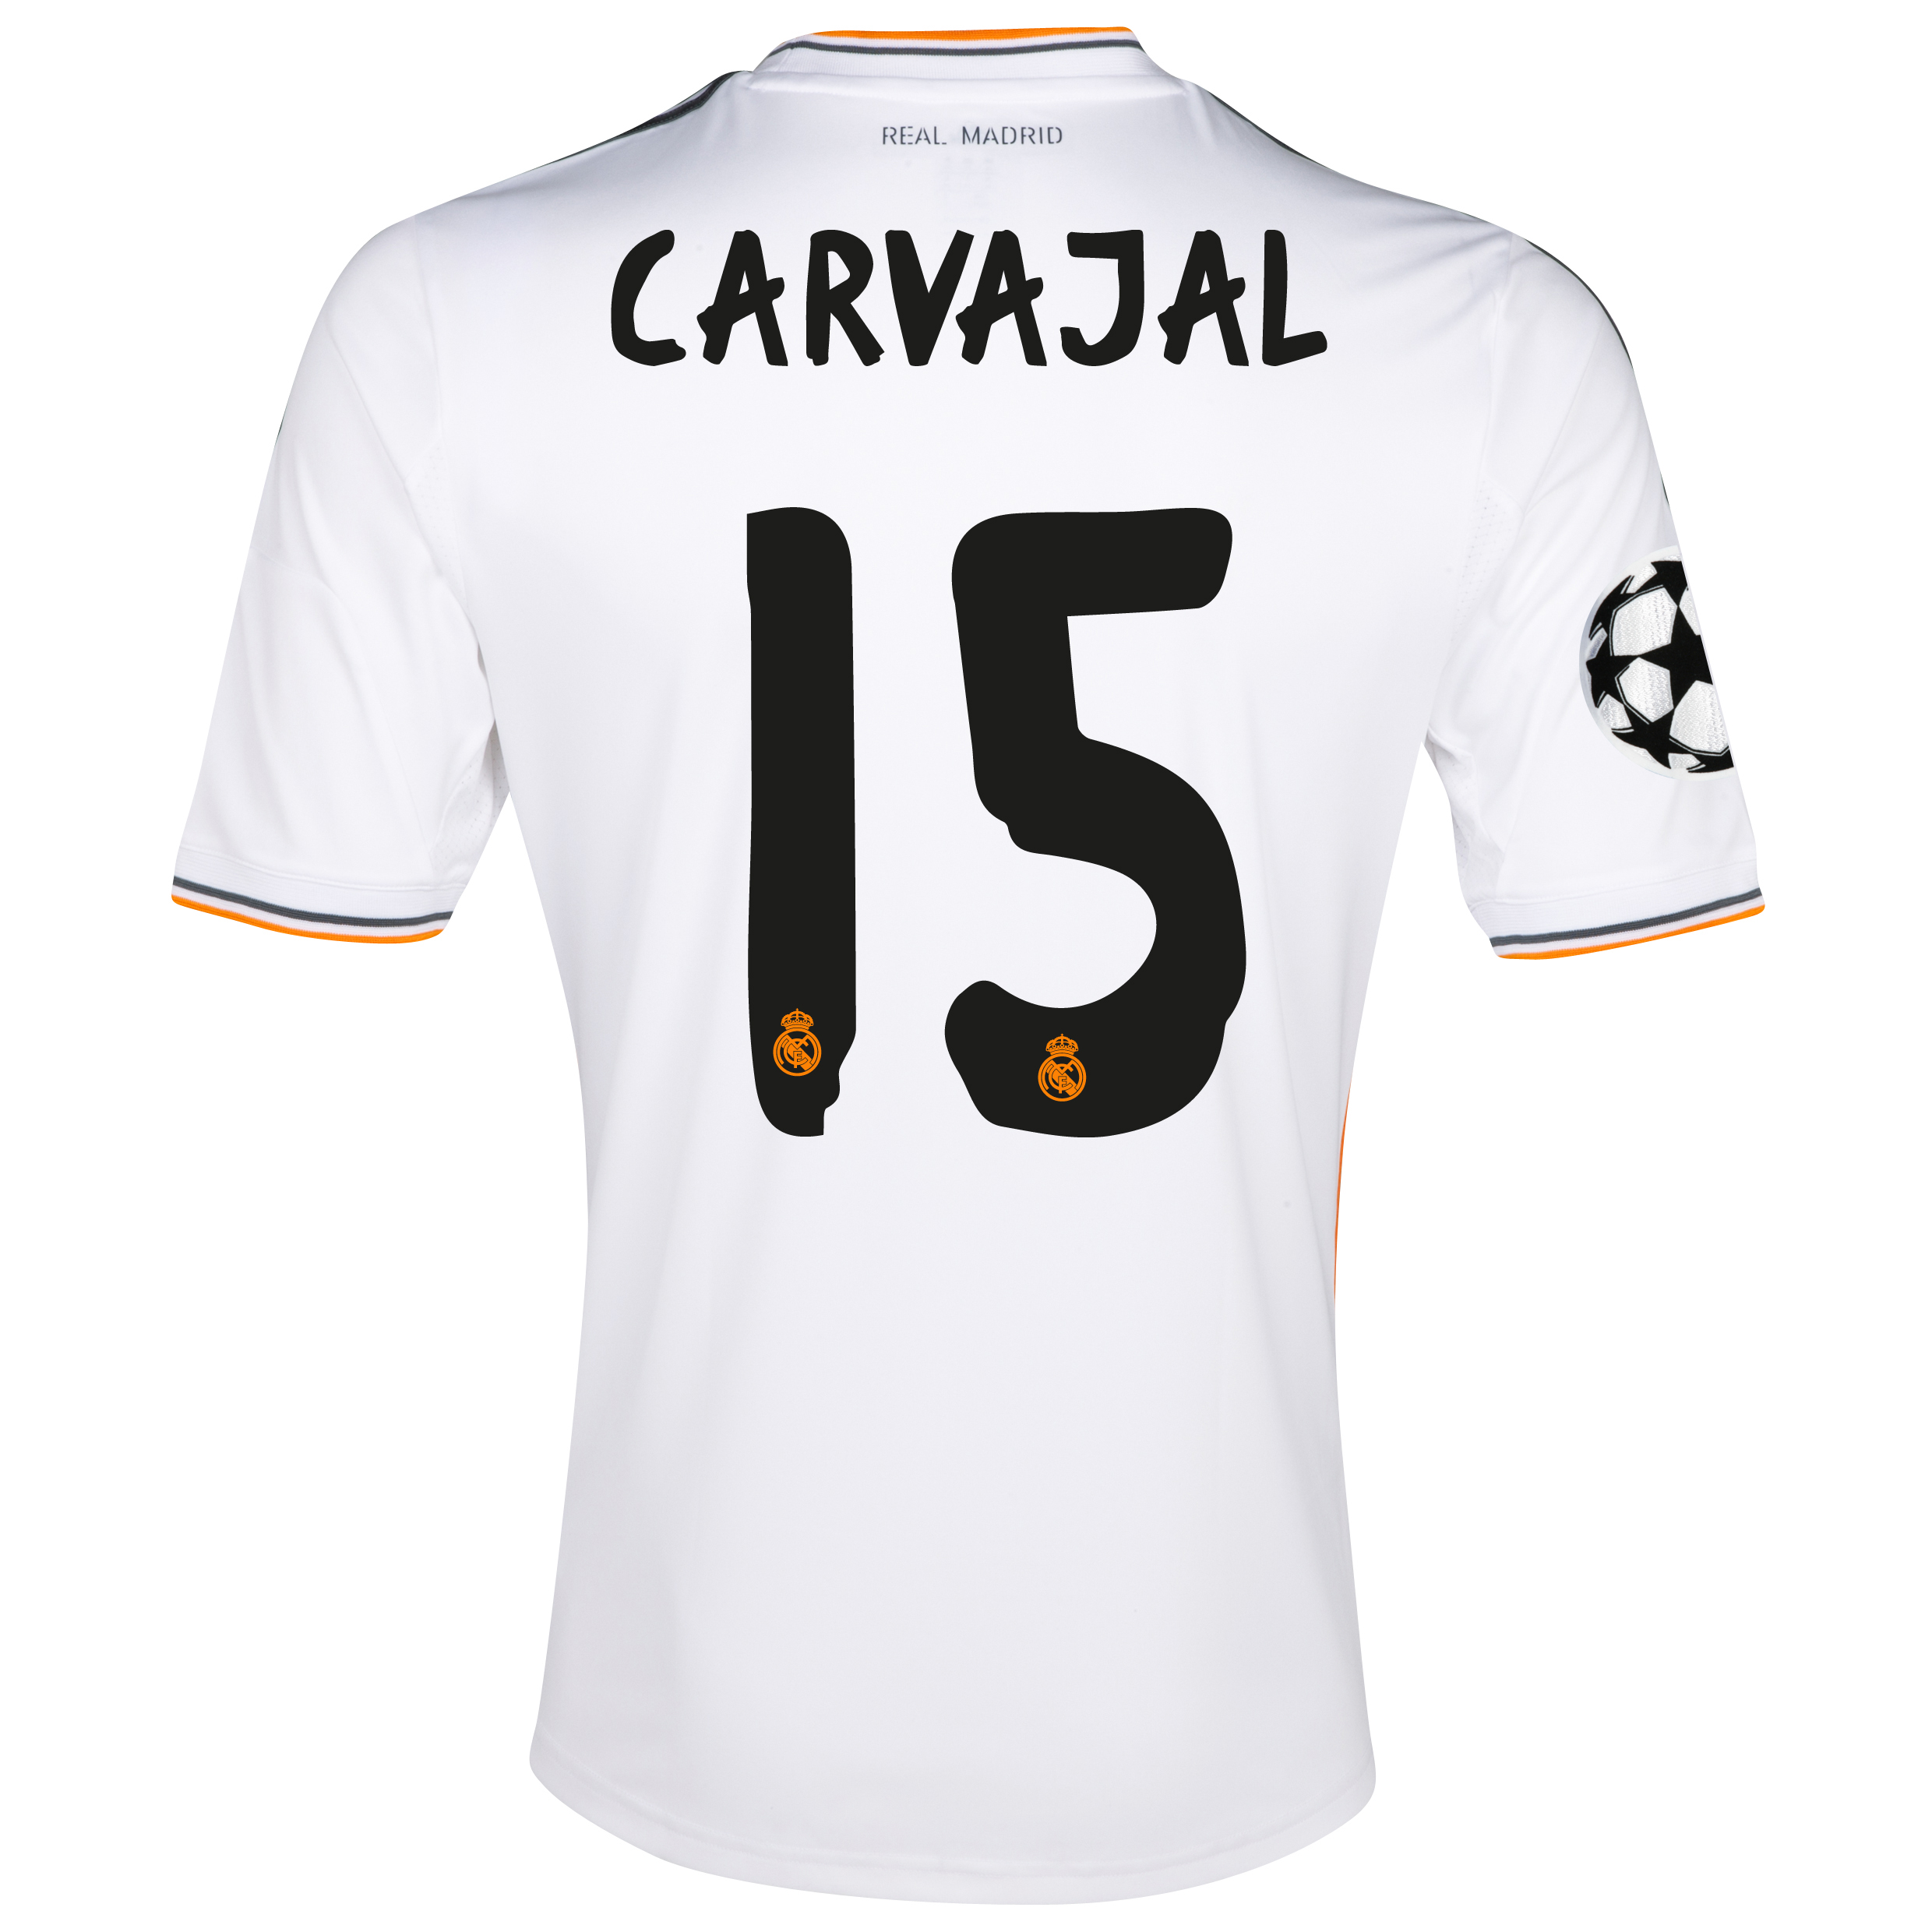 Real Madrid UEFA Champions League Home Shirt 2013/14 - kids with Carvajal 15 printing